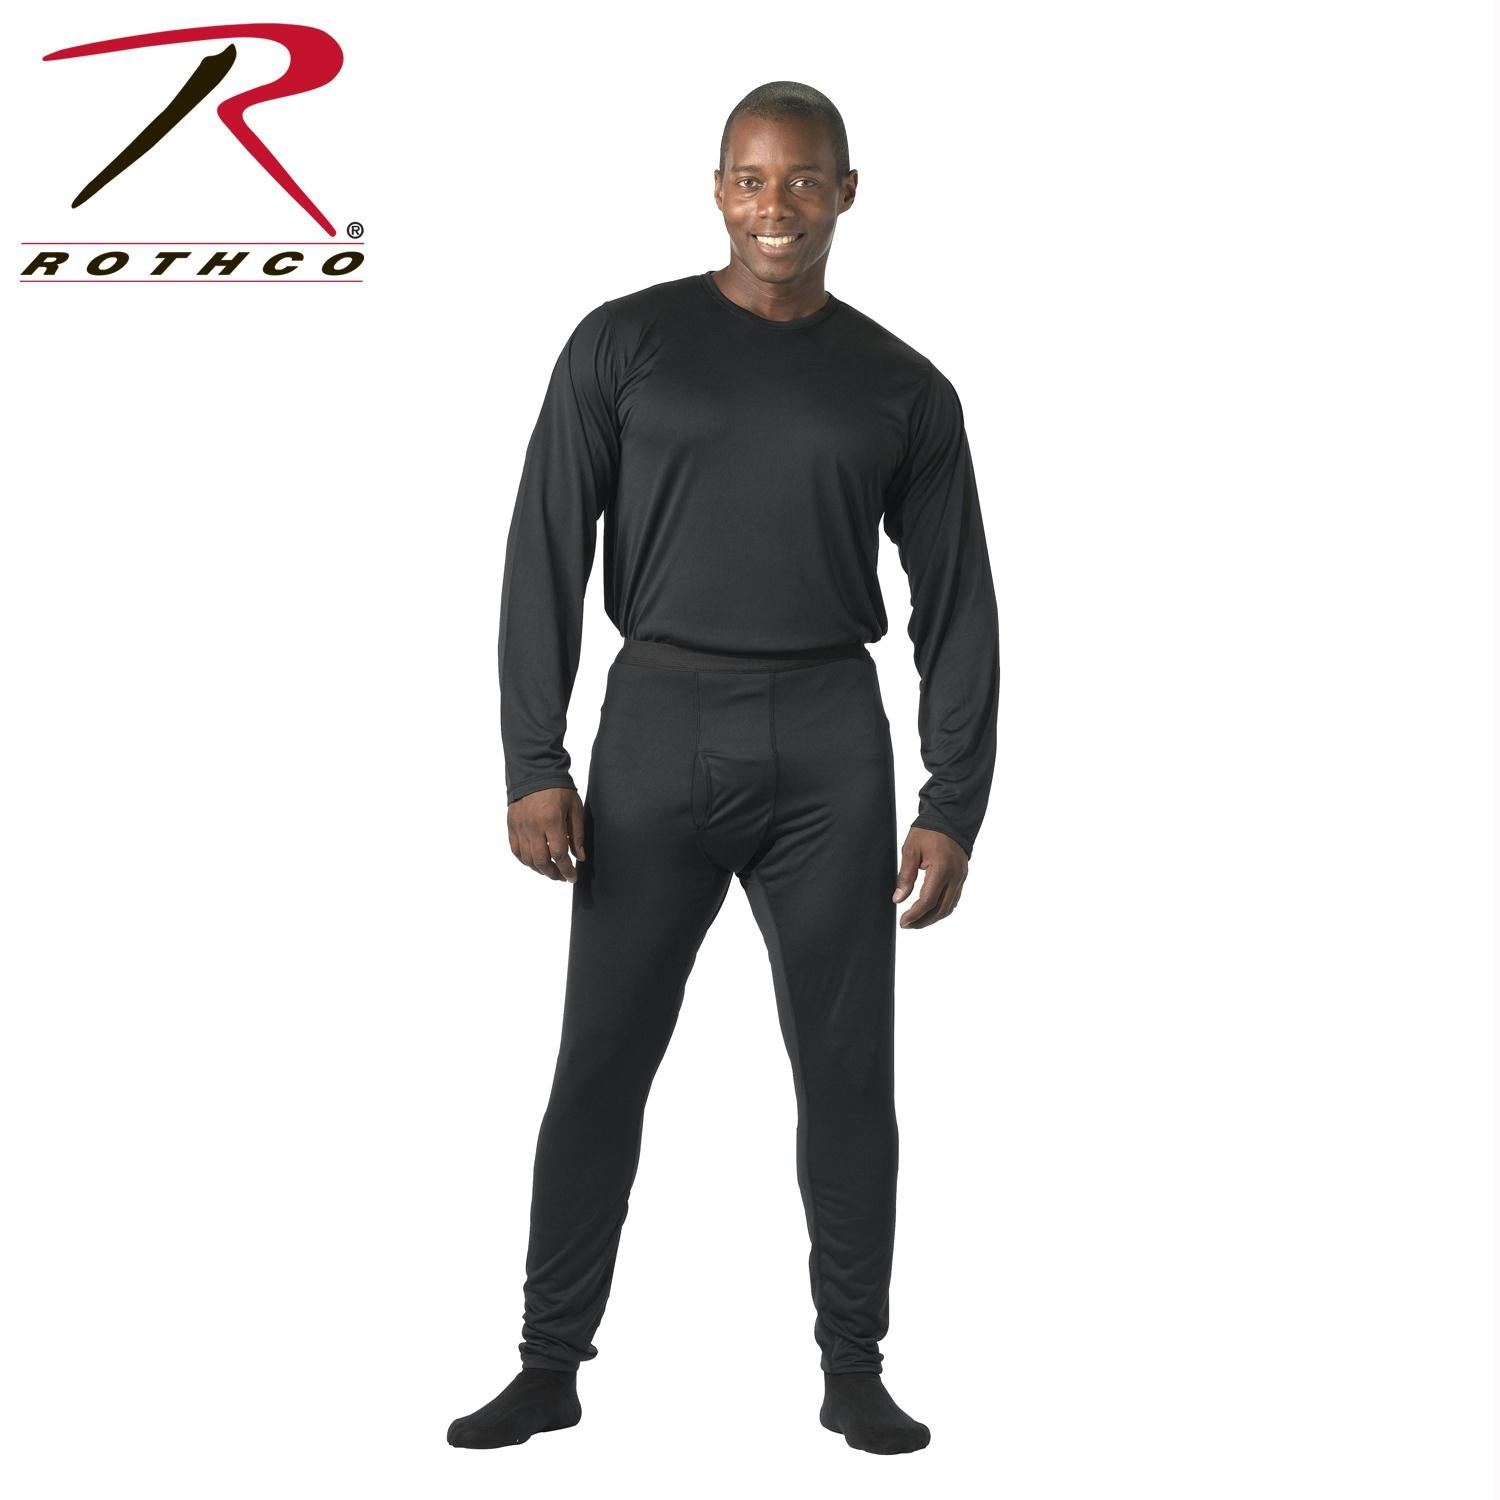 Rothco Gen III Silk Weight Underwear Top - Black / 3XL